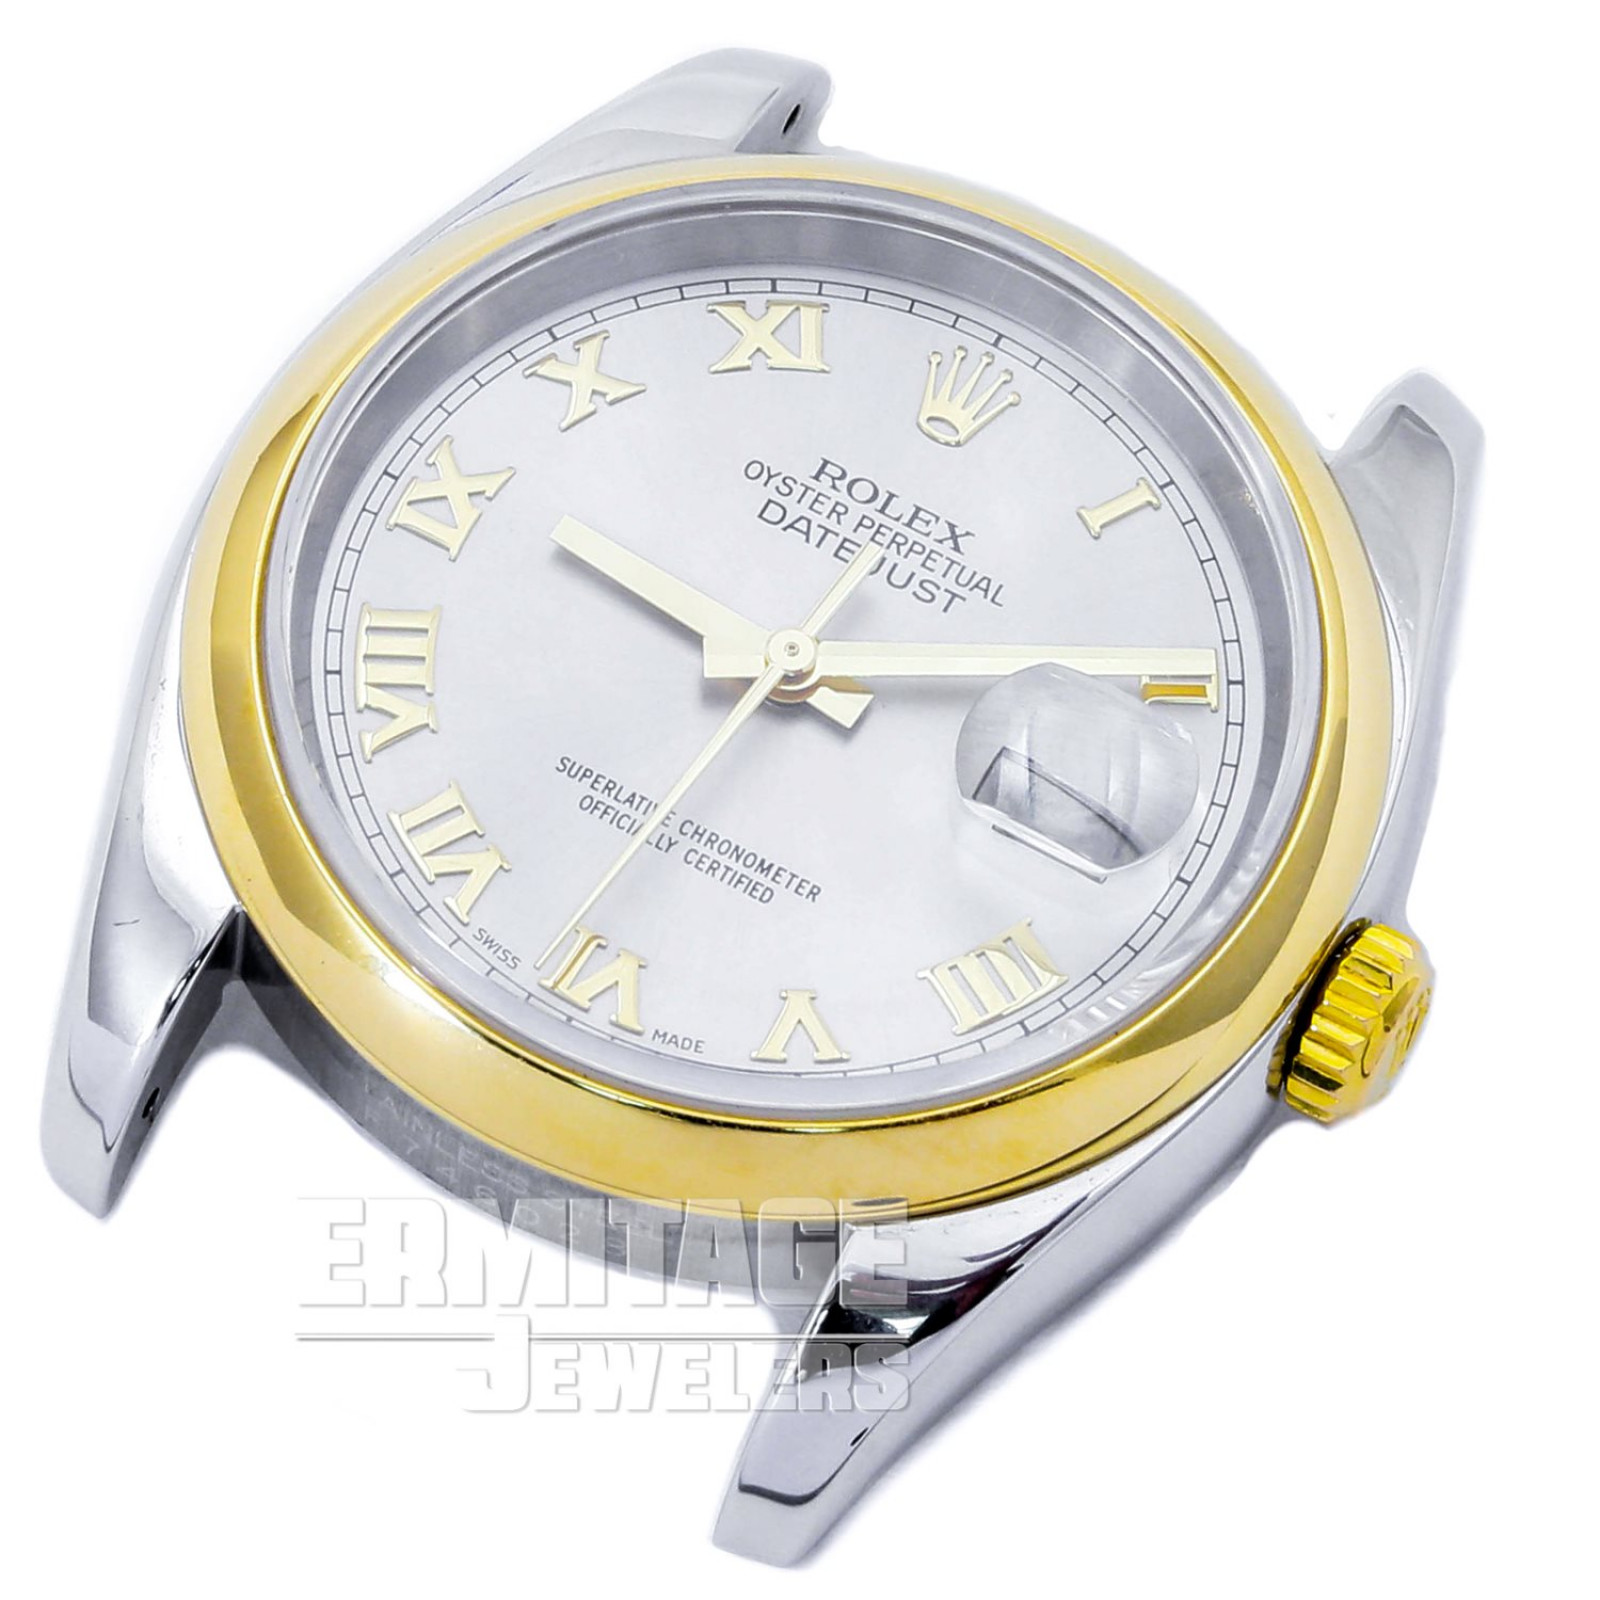 Gold & Steel on Oyster Rolex Datejust 116203 36 mm